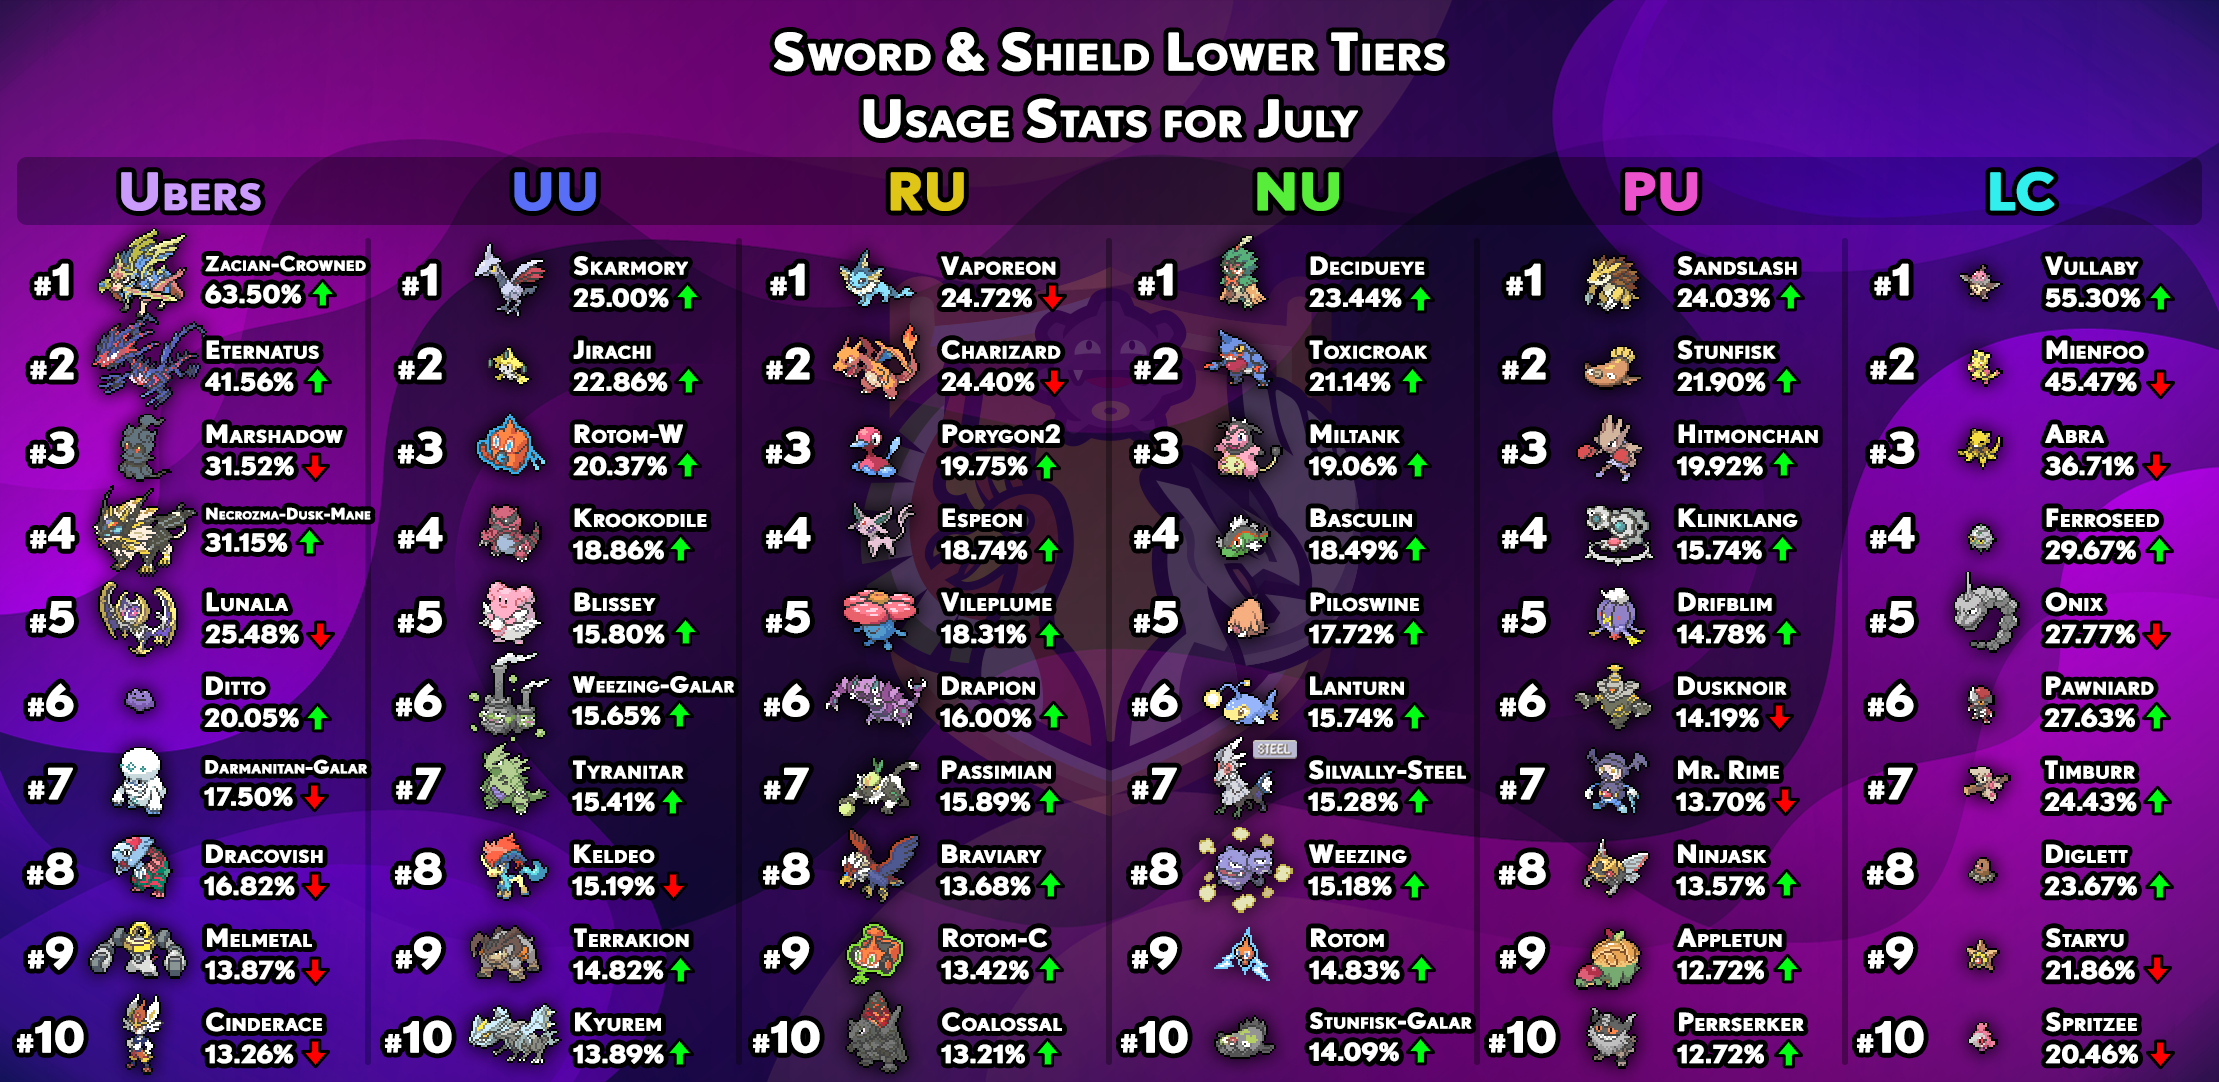 usagestats-gen8-other-tiers-july.png